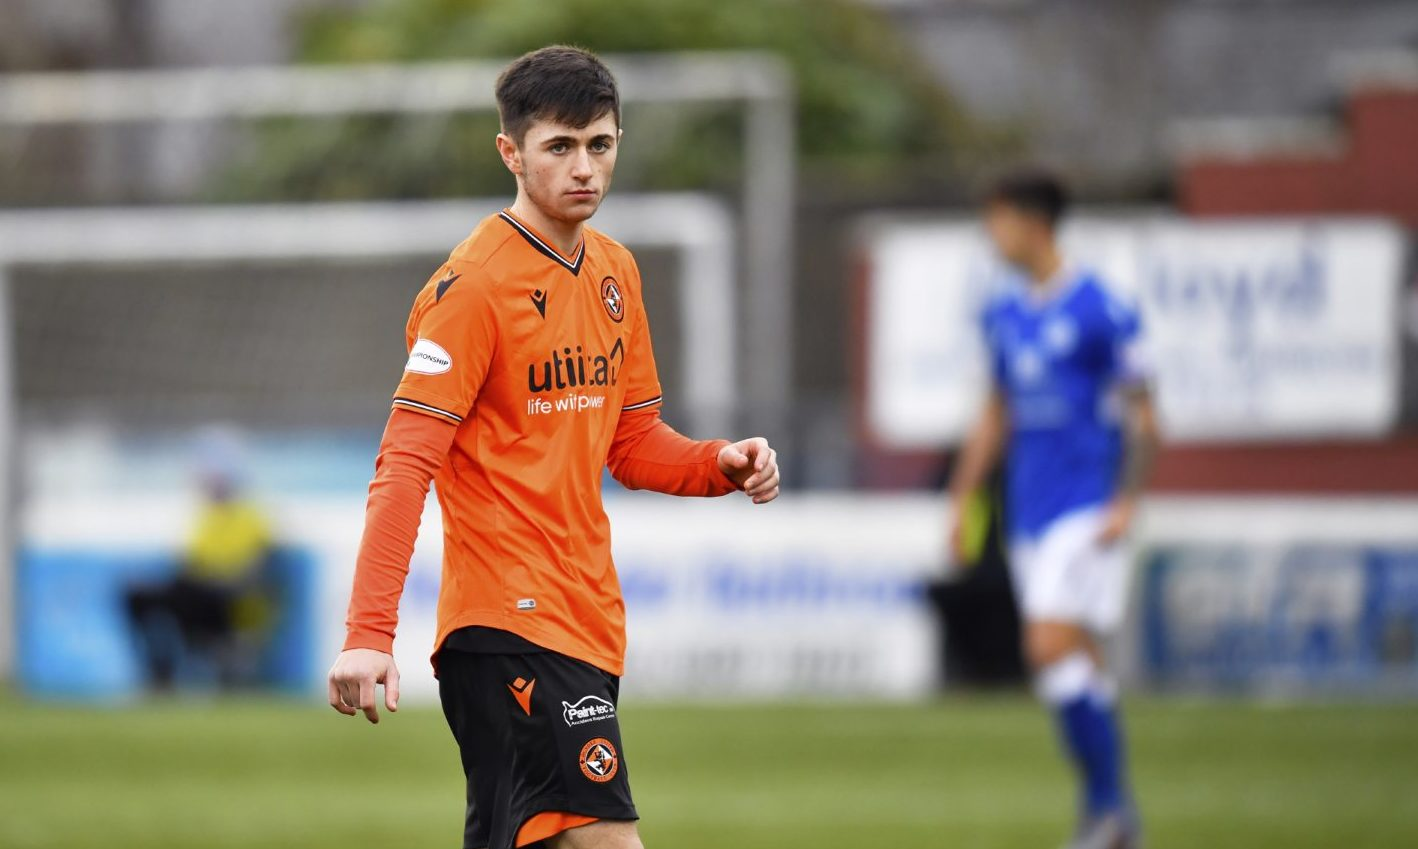 Dundee United midfielder Declan Glass out for the season after undergoing knee surgery - The Courier